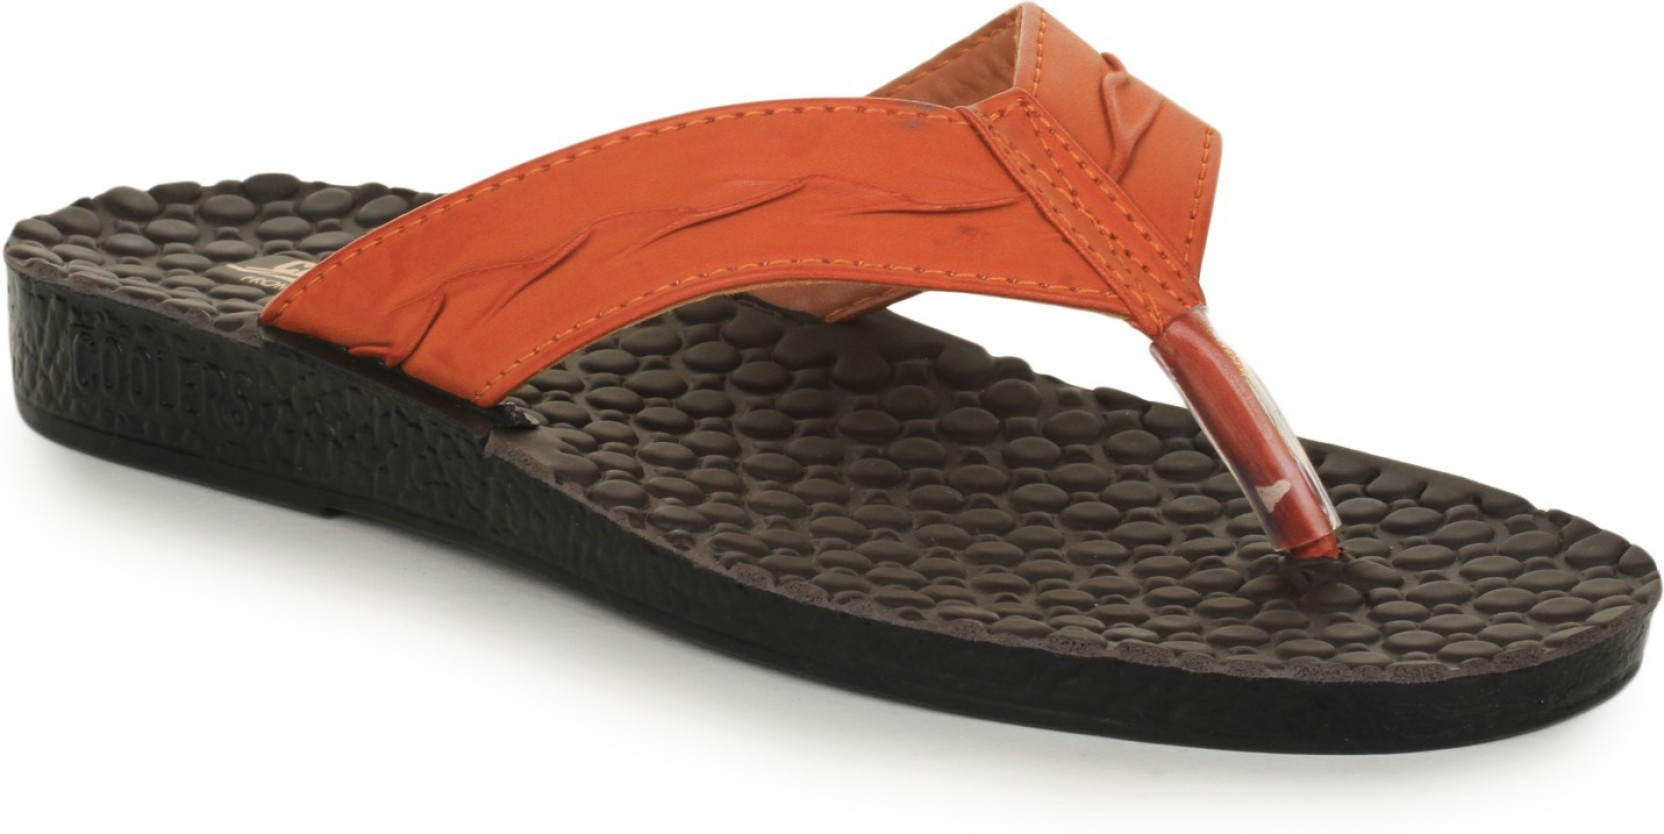 d9b76196c0ba7 Liberty Flip Flops - Buy Liberty Flip Flops Online at Best Price ...